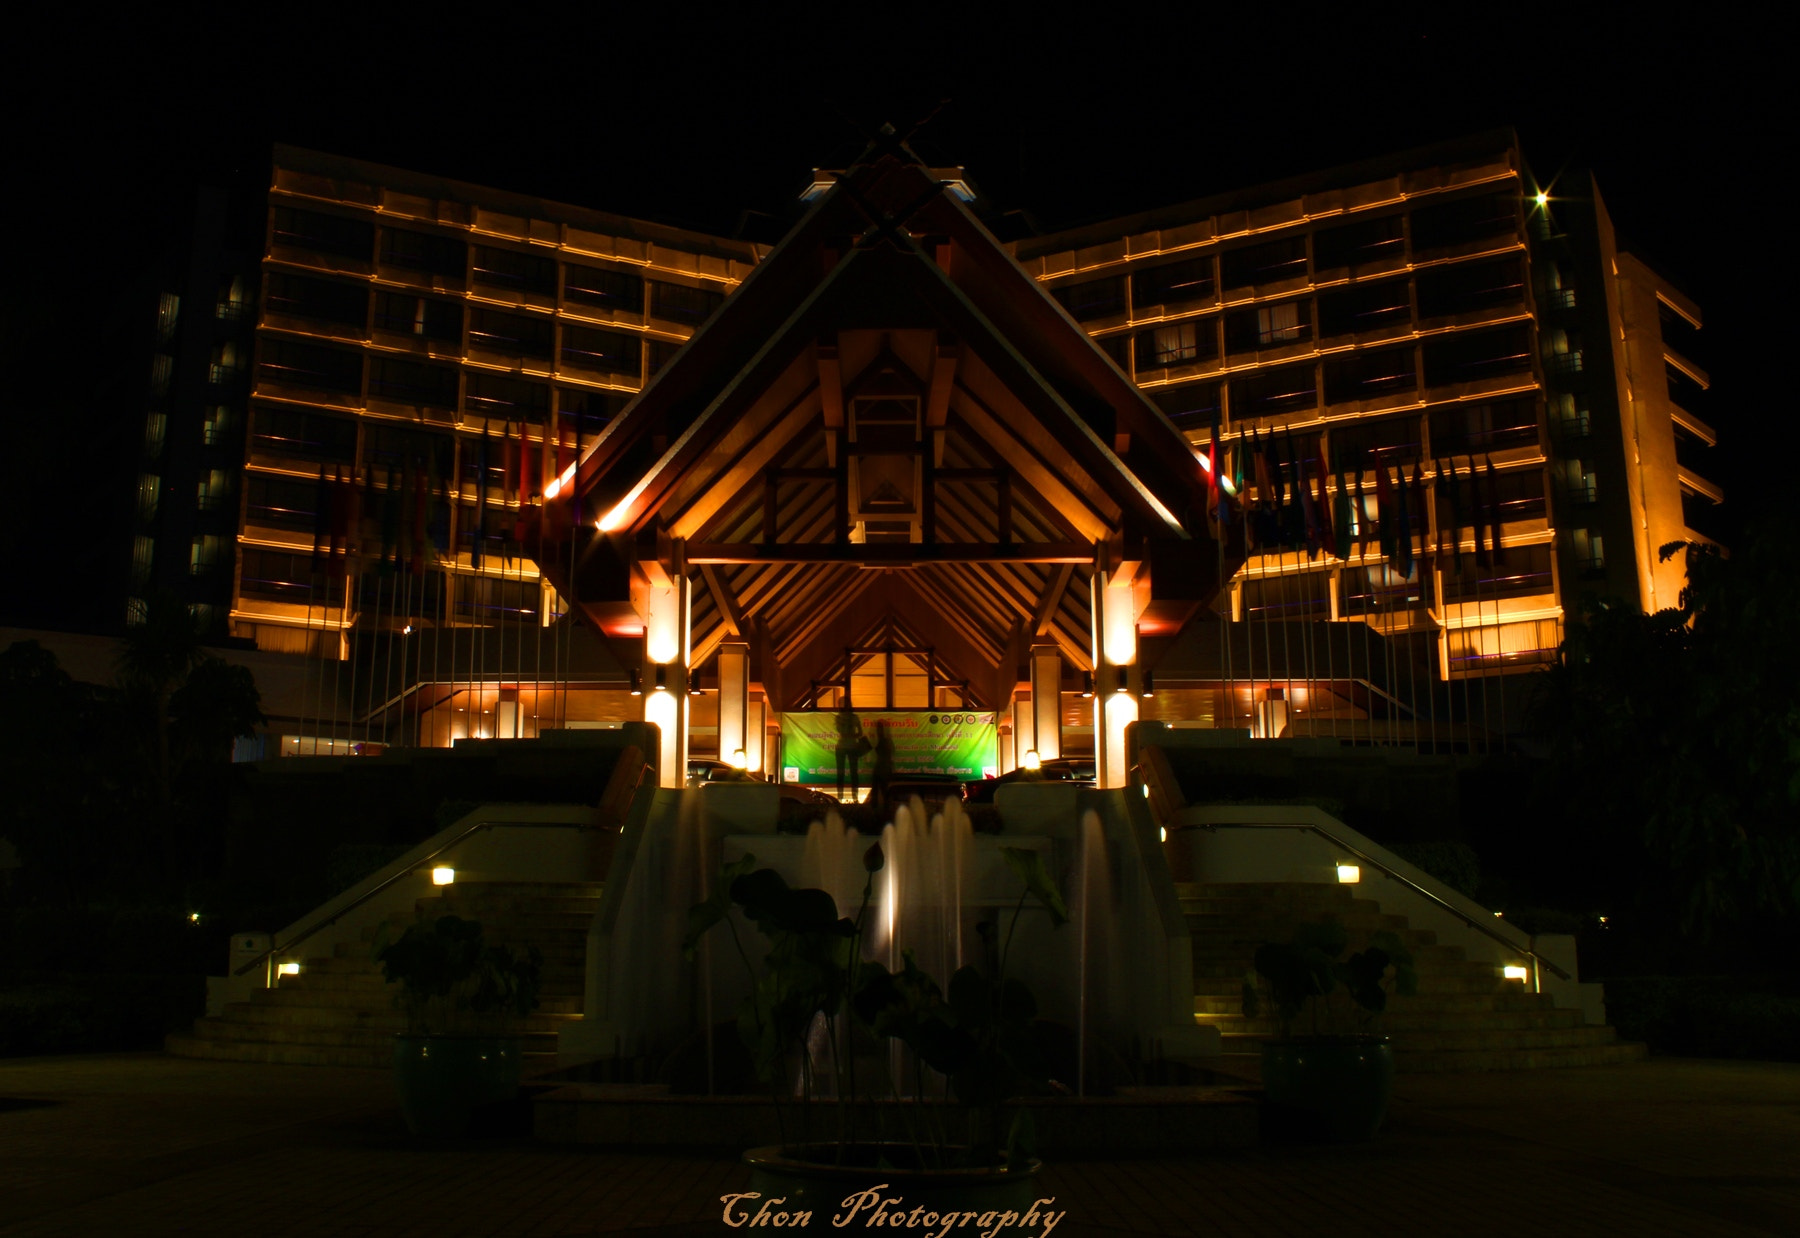 Photograph Dusit Island Hotel, Chang Rai by thicha chan on 500px